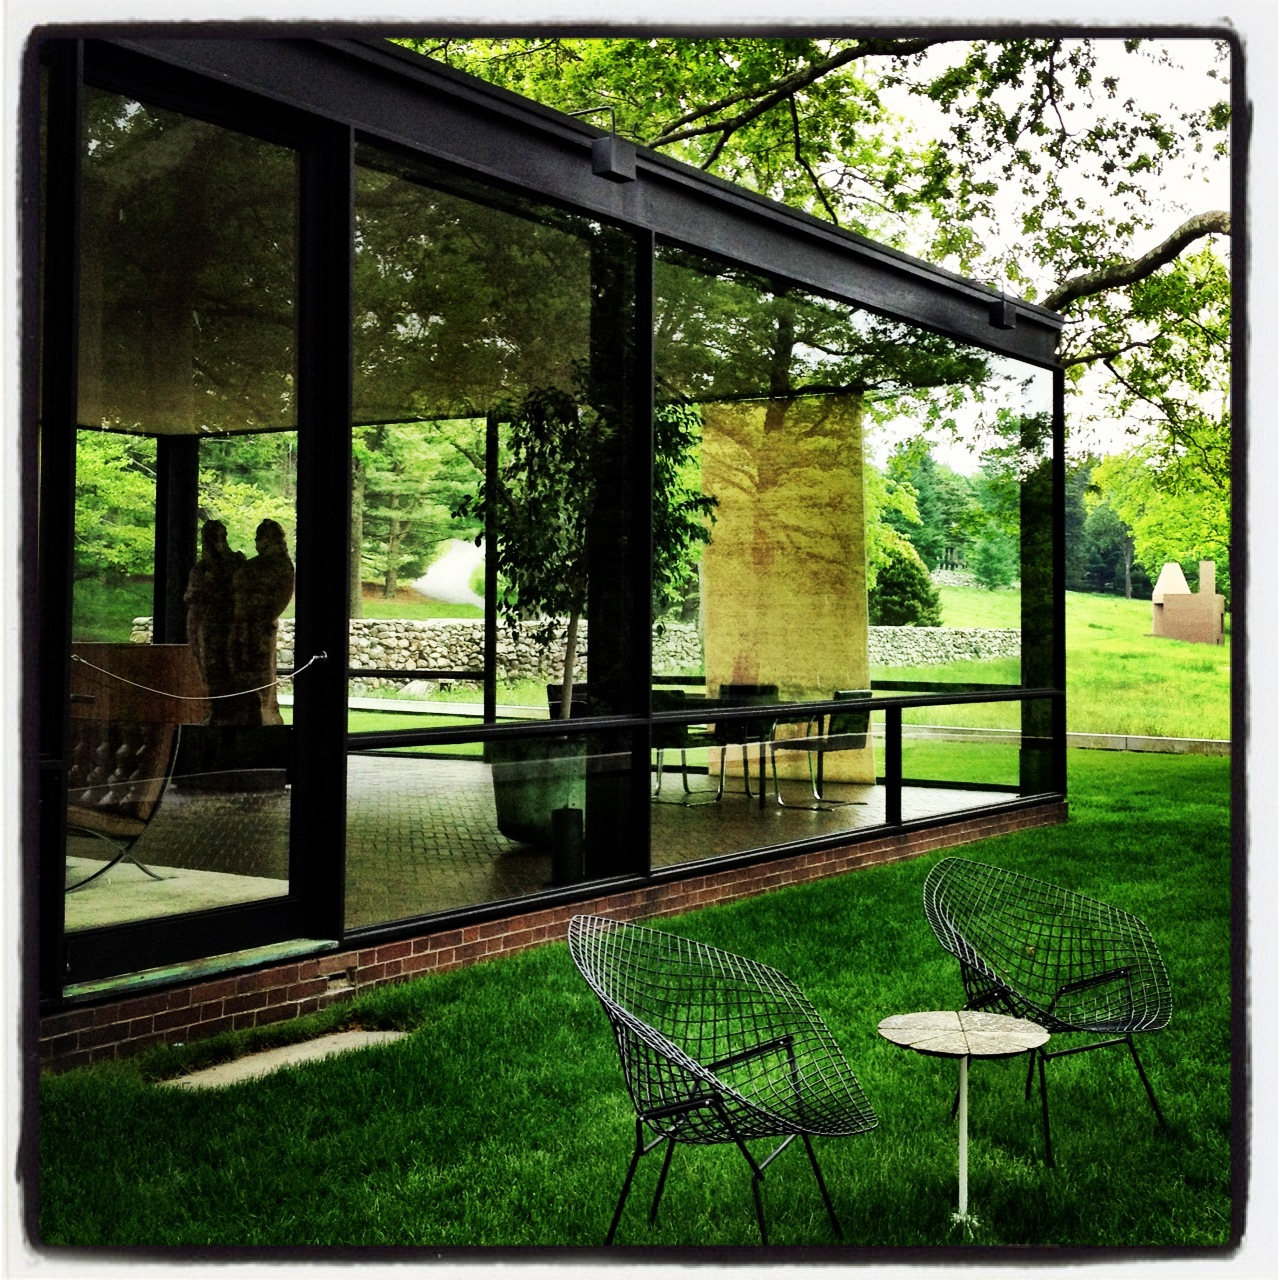 the location on location the philip johnson glass house the location. Black Bedroom Furniture Sets. Home Design Ideas